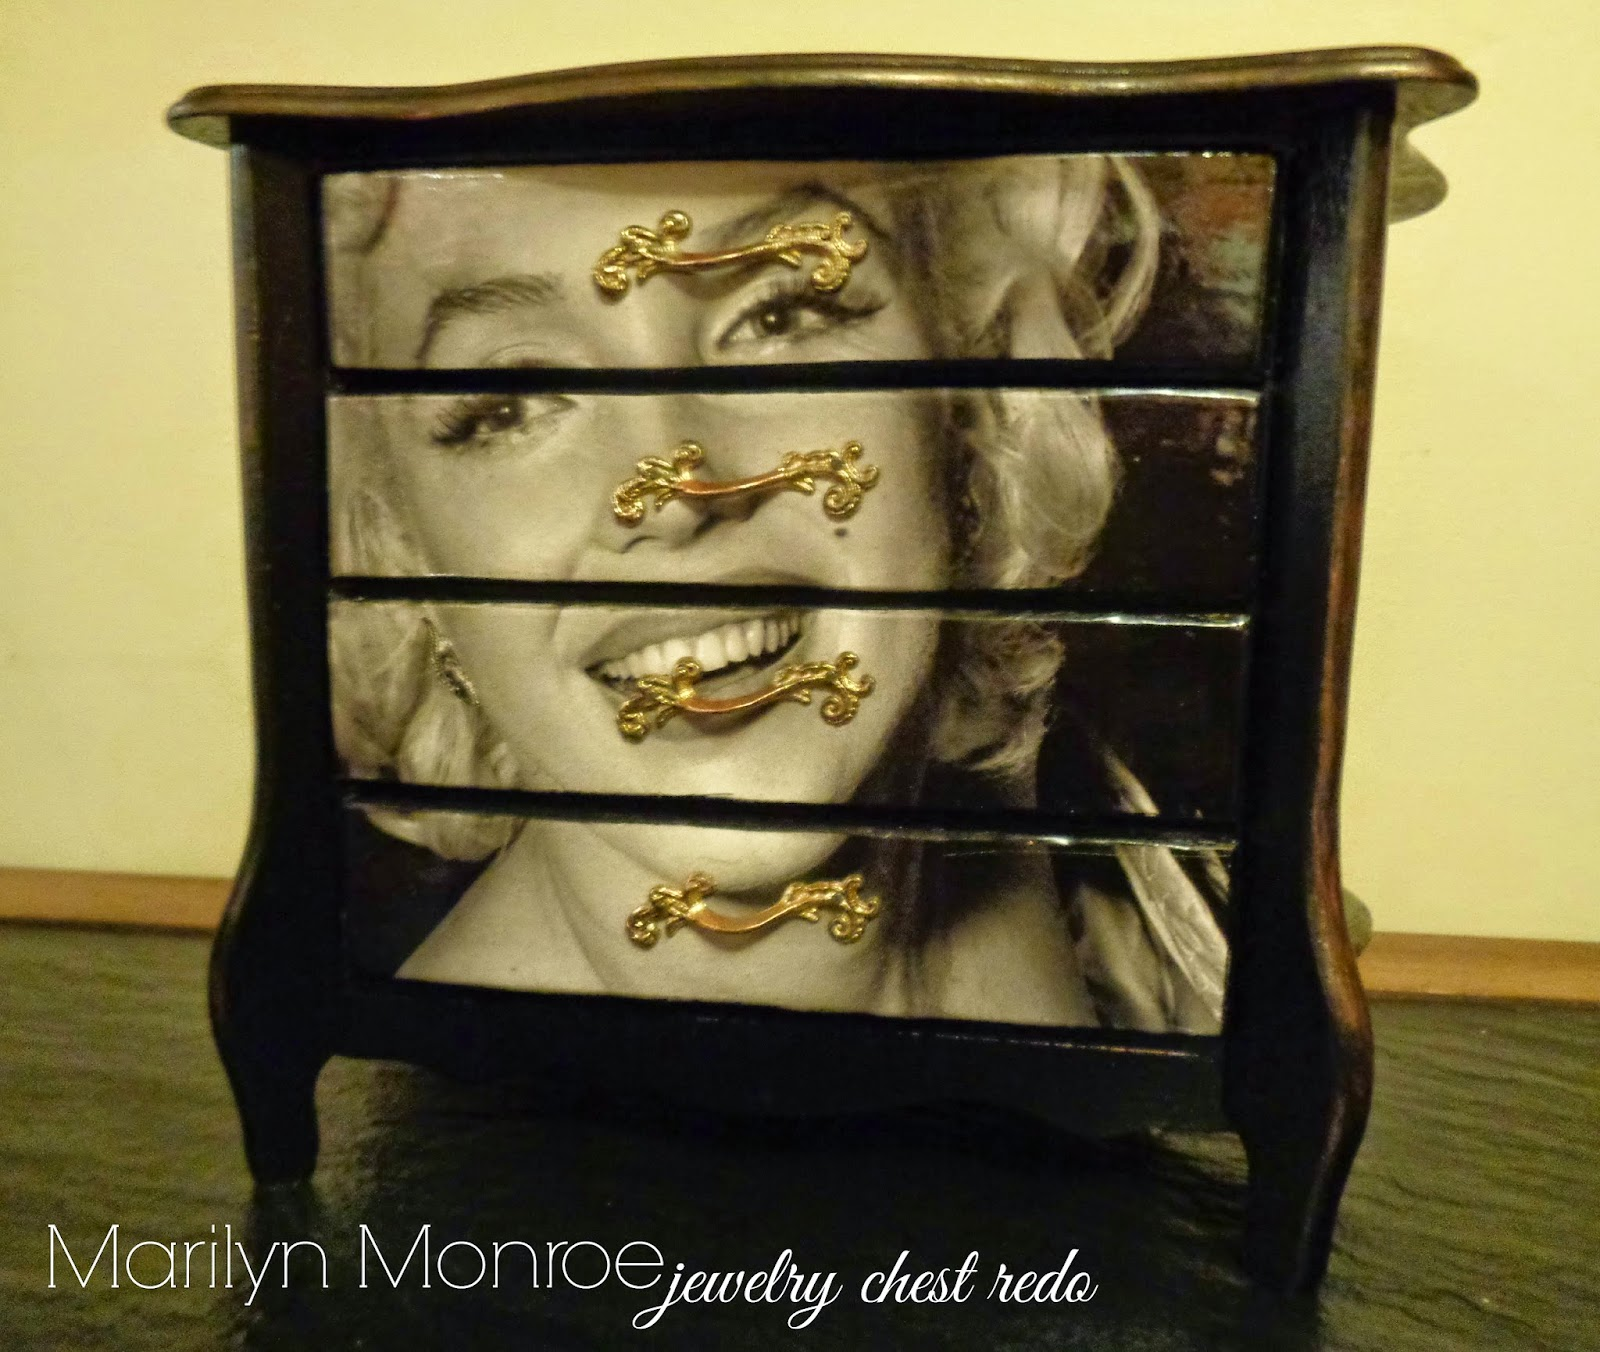 Redo It Yourself Inspirations: Marilyn Monroe Jewelry Chest